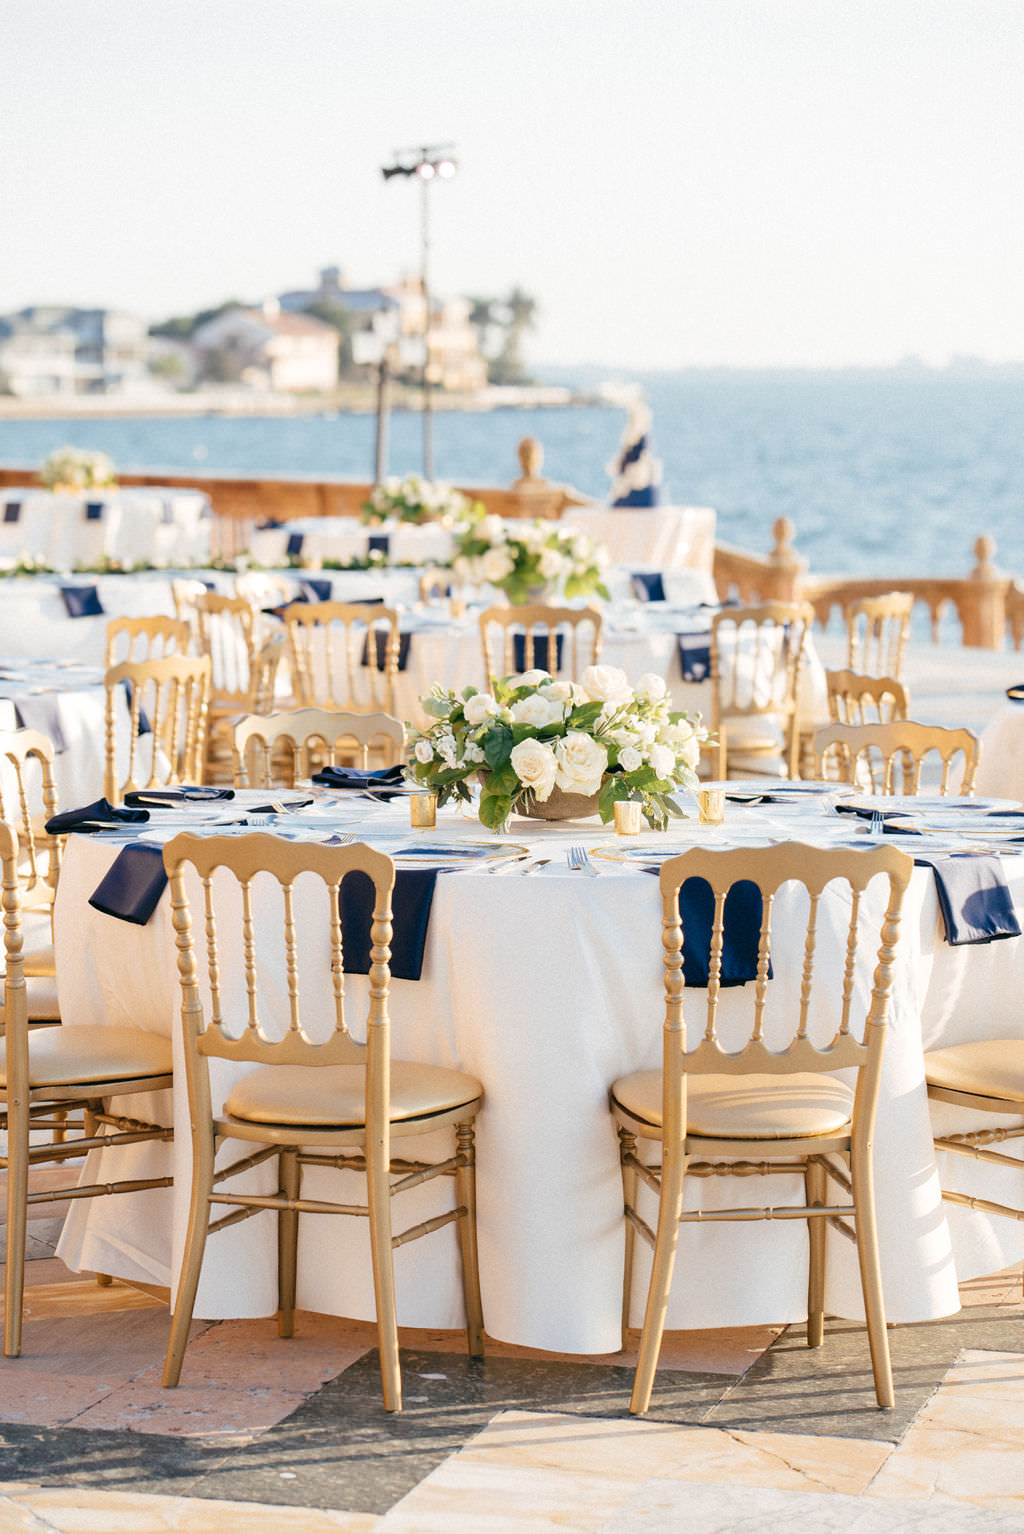 Classic Elegant Wedding Reception Decor, Round Tables with White Tablecloths and Navy Blue Linens, Gold Chairs, White and Greenery Floral Low Centerpieces   Sarasota Historic Waterfront Wedding Venue Ca d'Zan at The Ringling Museum   Tampa Bay Wedding Planner NK Productions